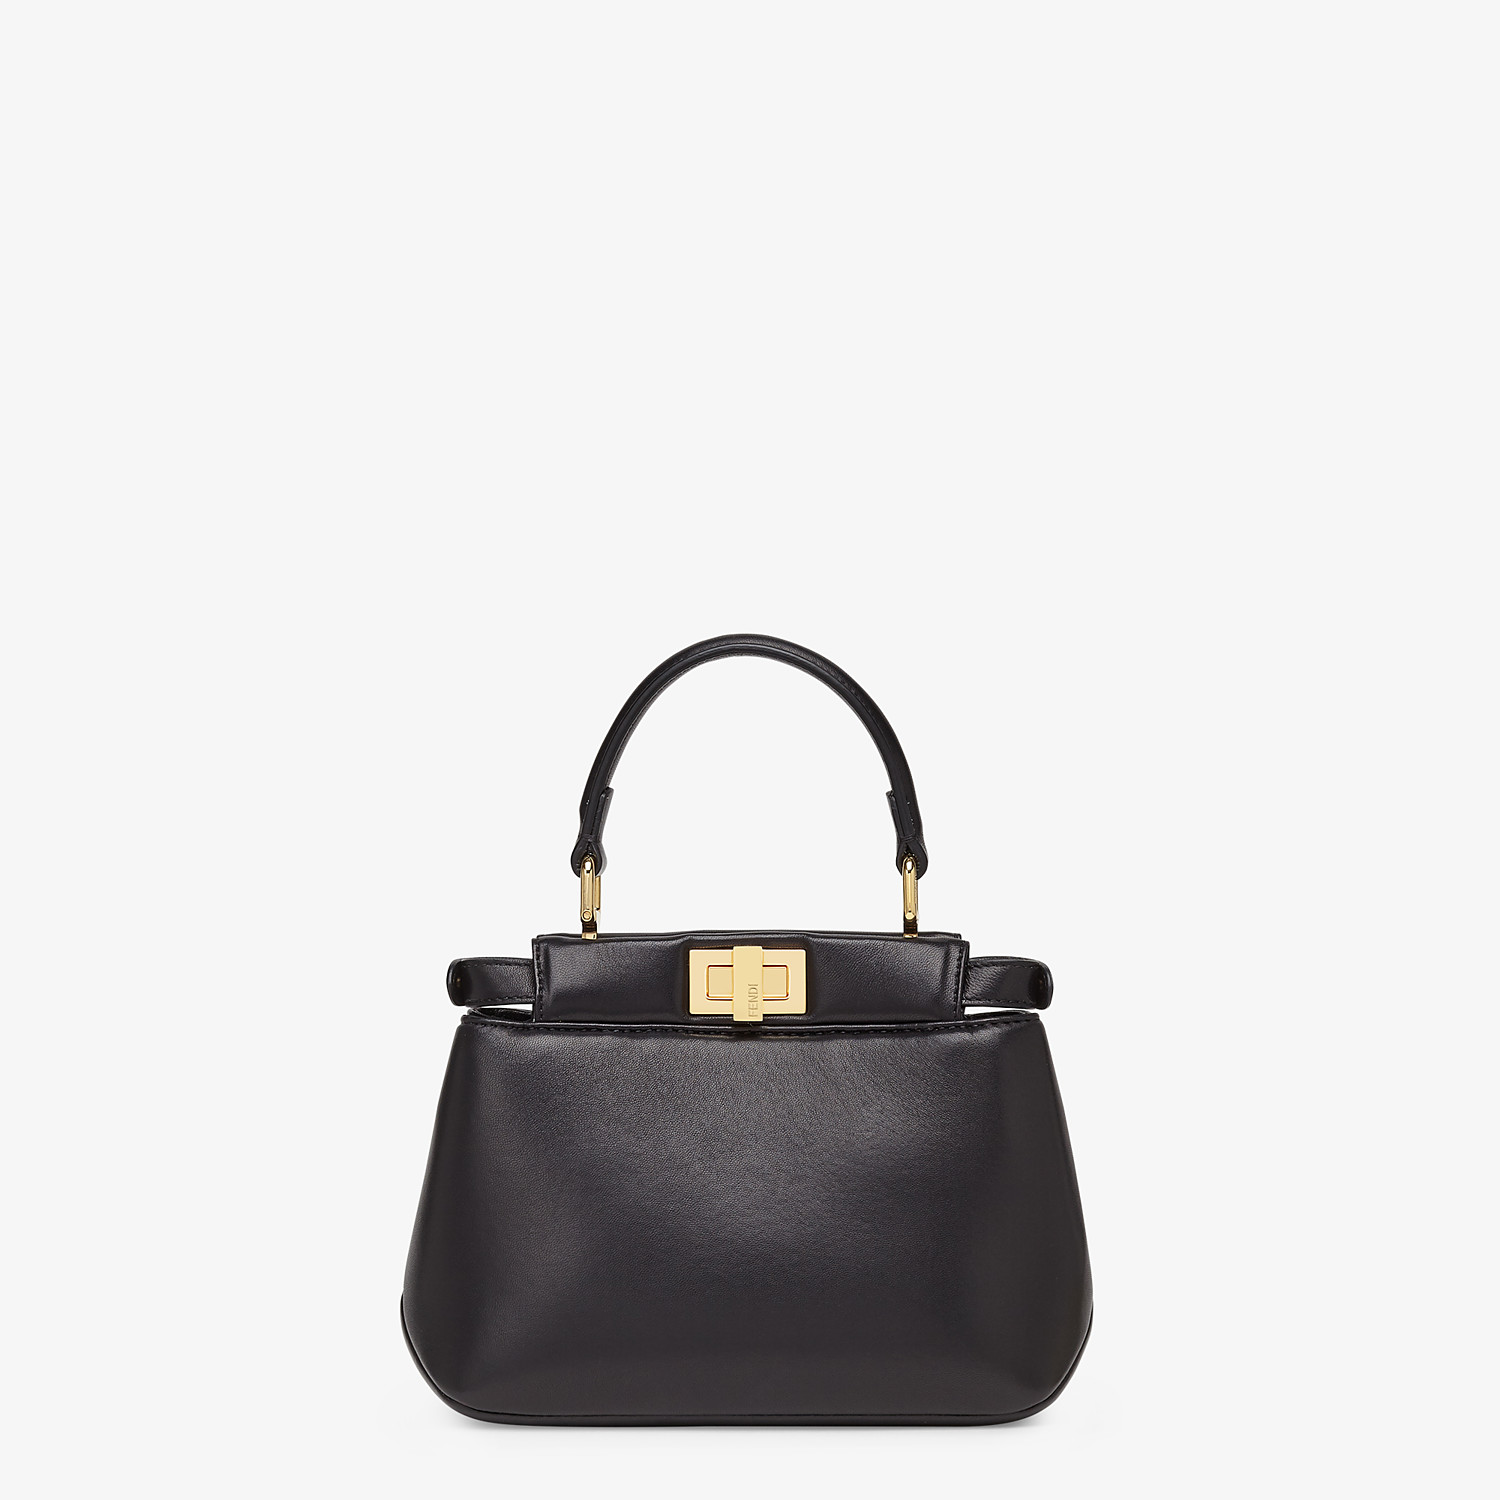 FENDI PEEKABOO ICONIC XS - Black nappa leather bag - view 4 detail